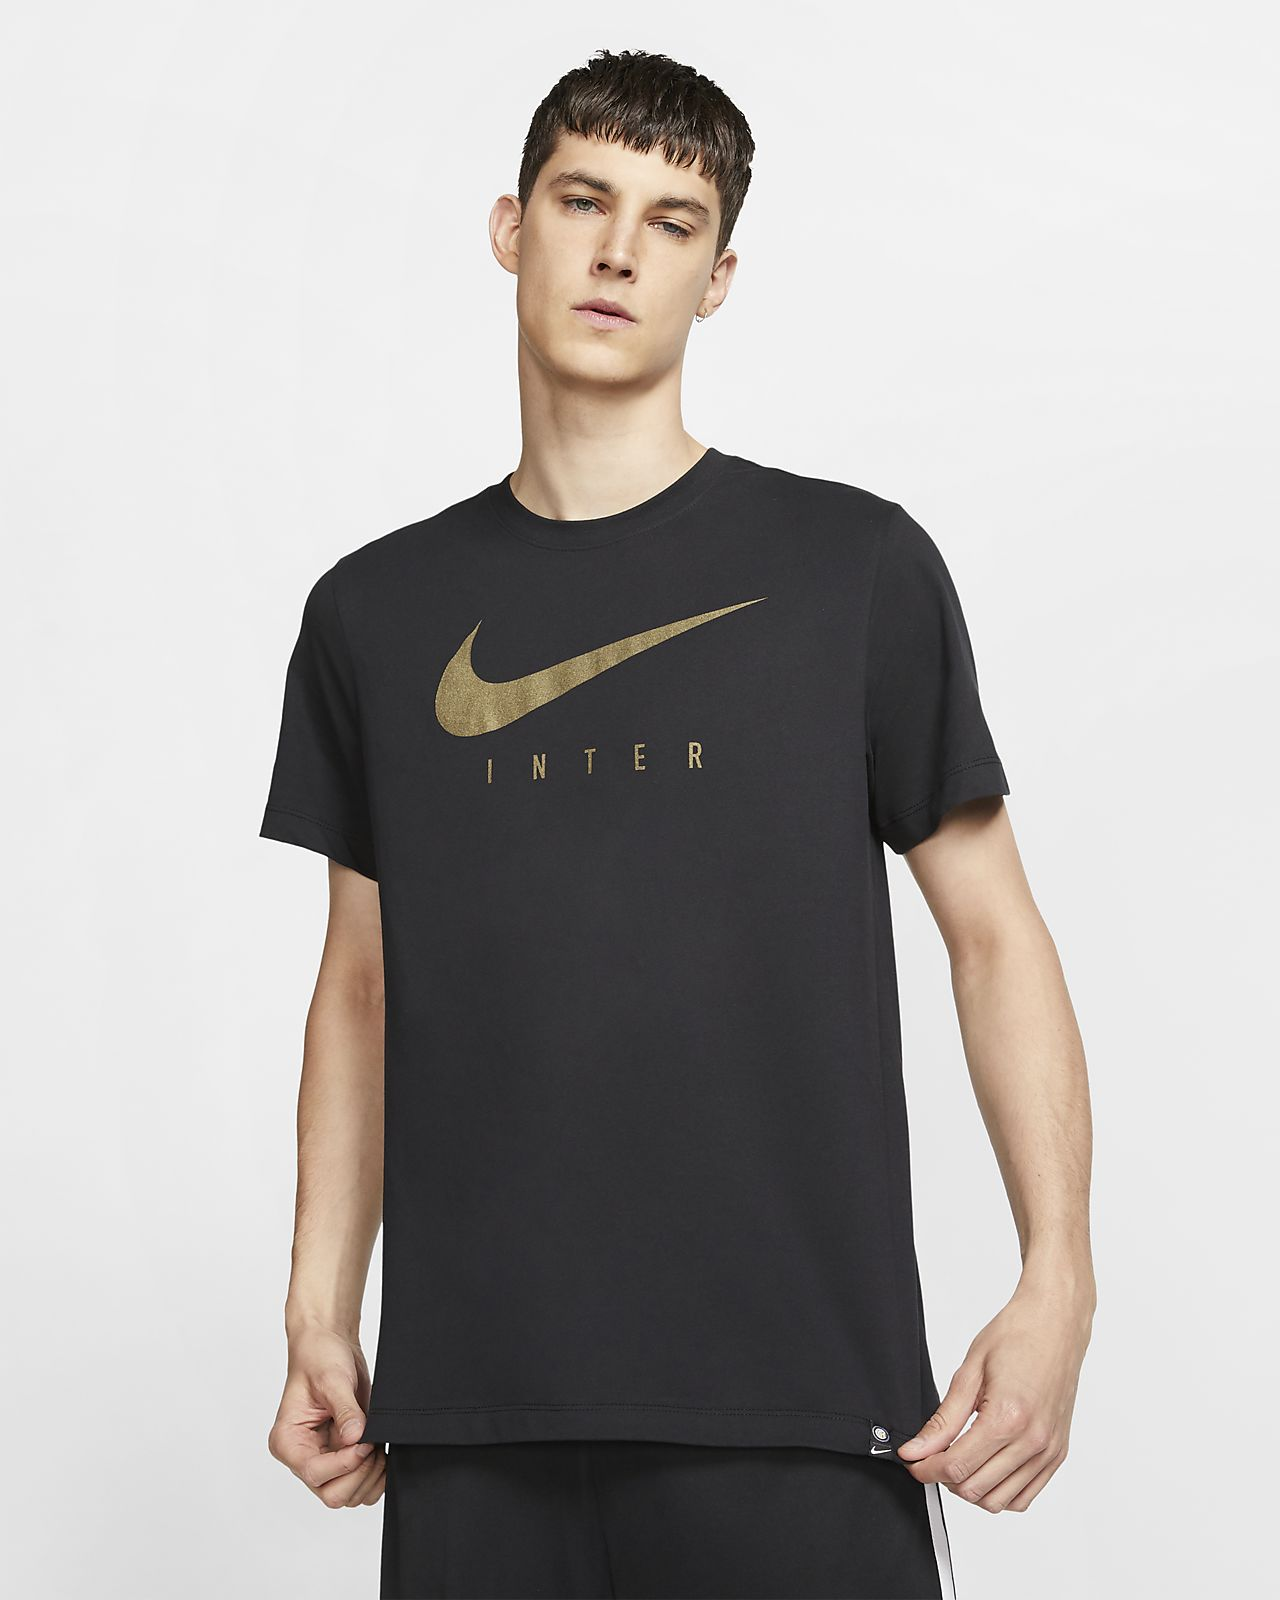 T-shirt da calcio Nike Dri-FIT Inter - Uomo